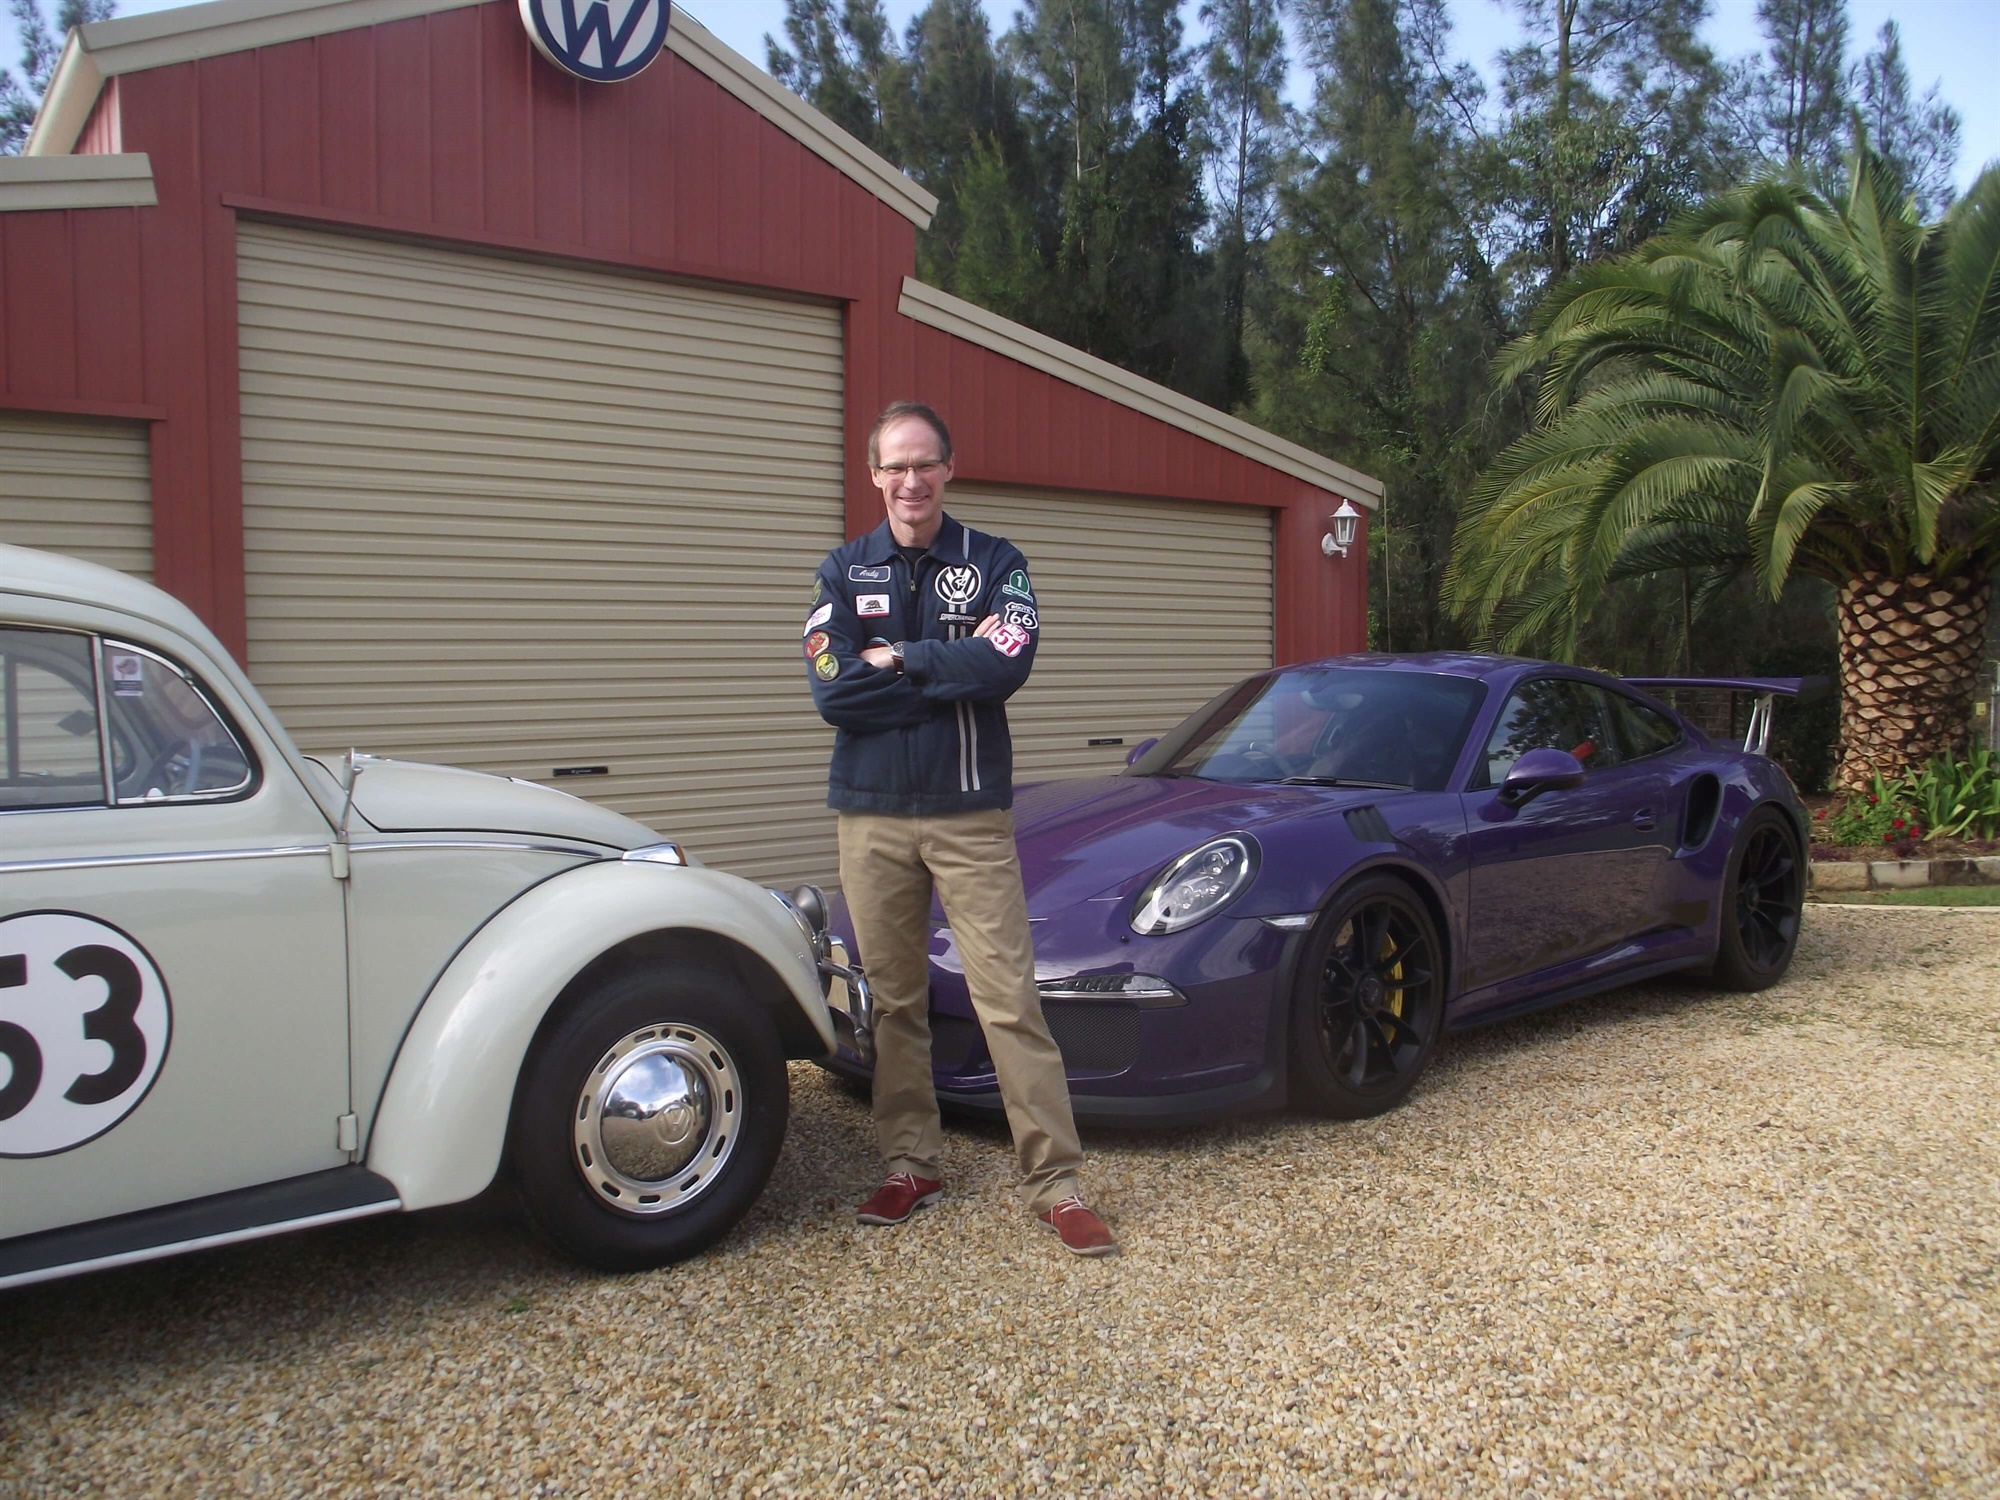 Andy Roberts standing in front of two cars